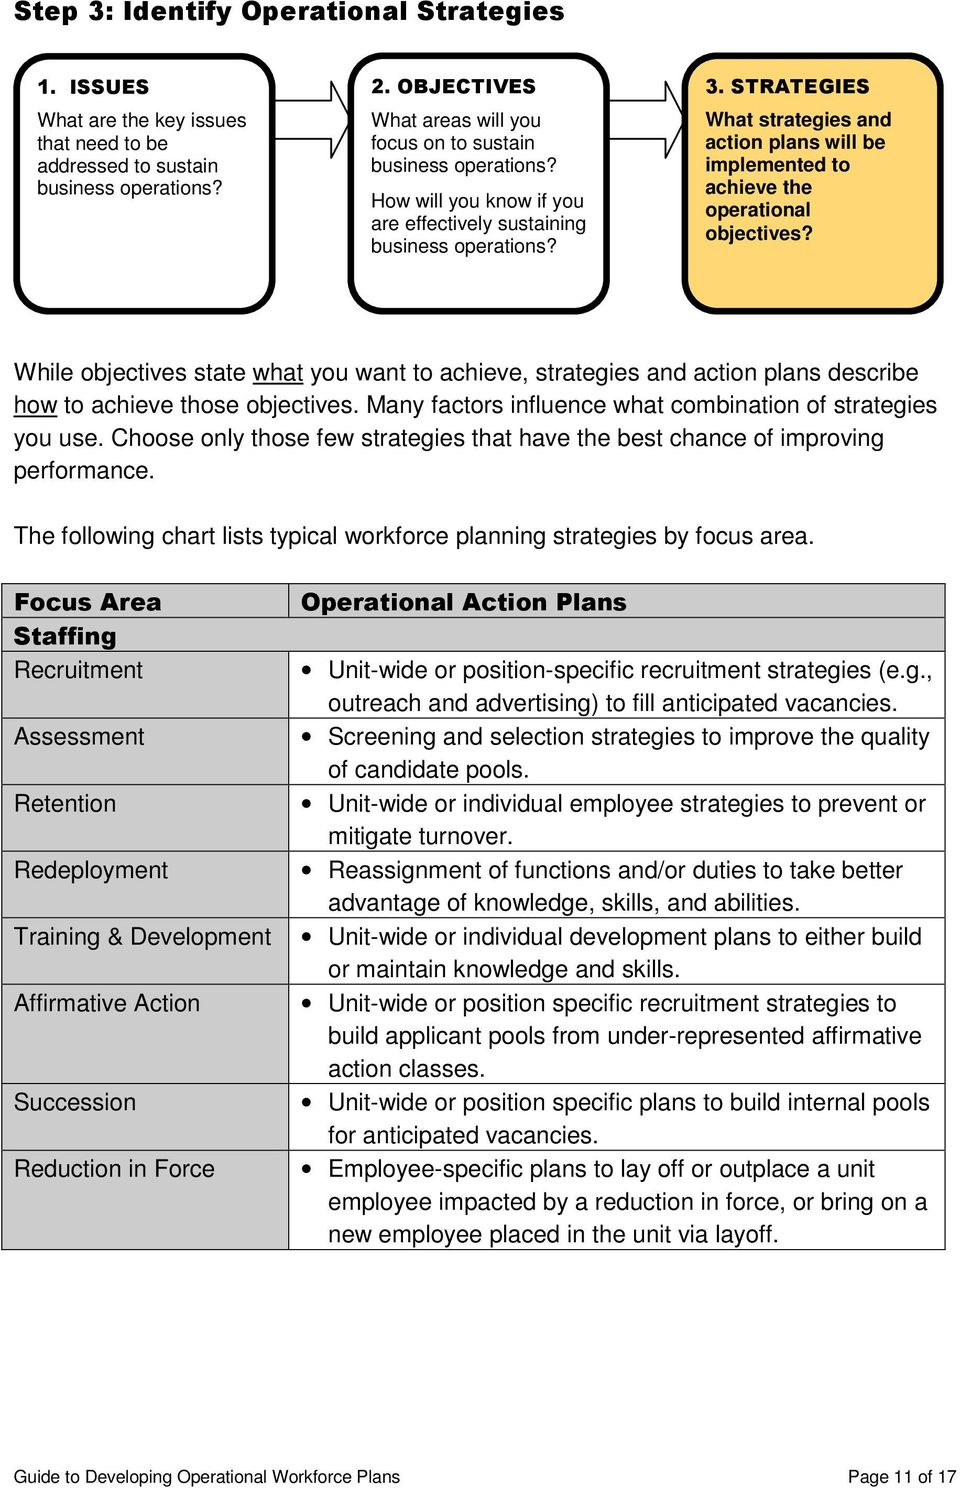 STRATEGIES What strategies and action plans will be implemented to achieve the operational objectives?